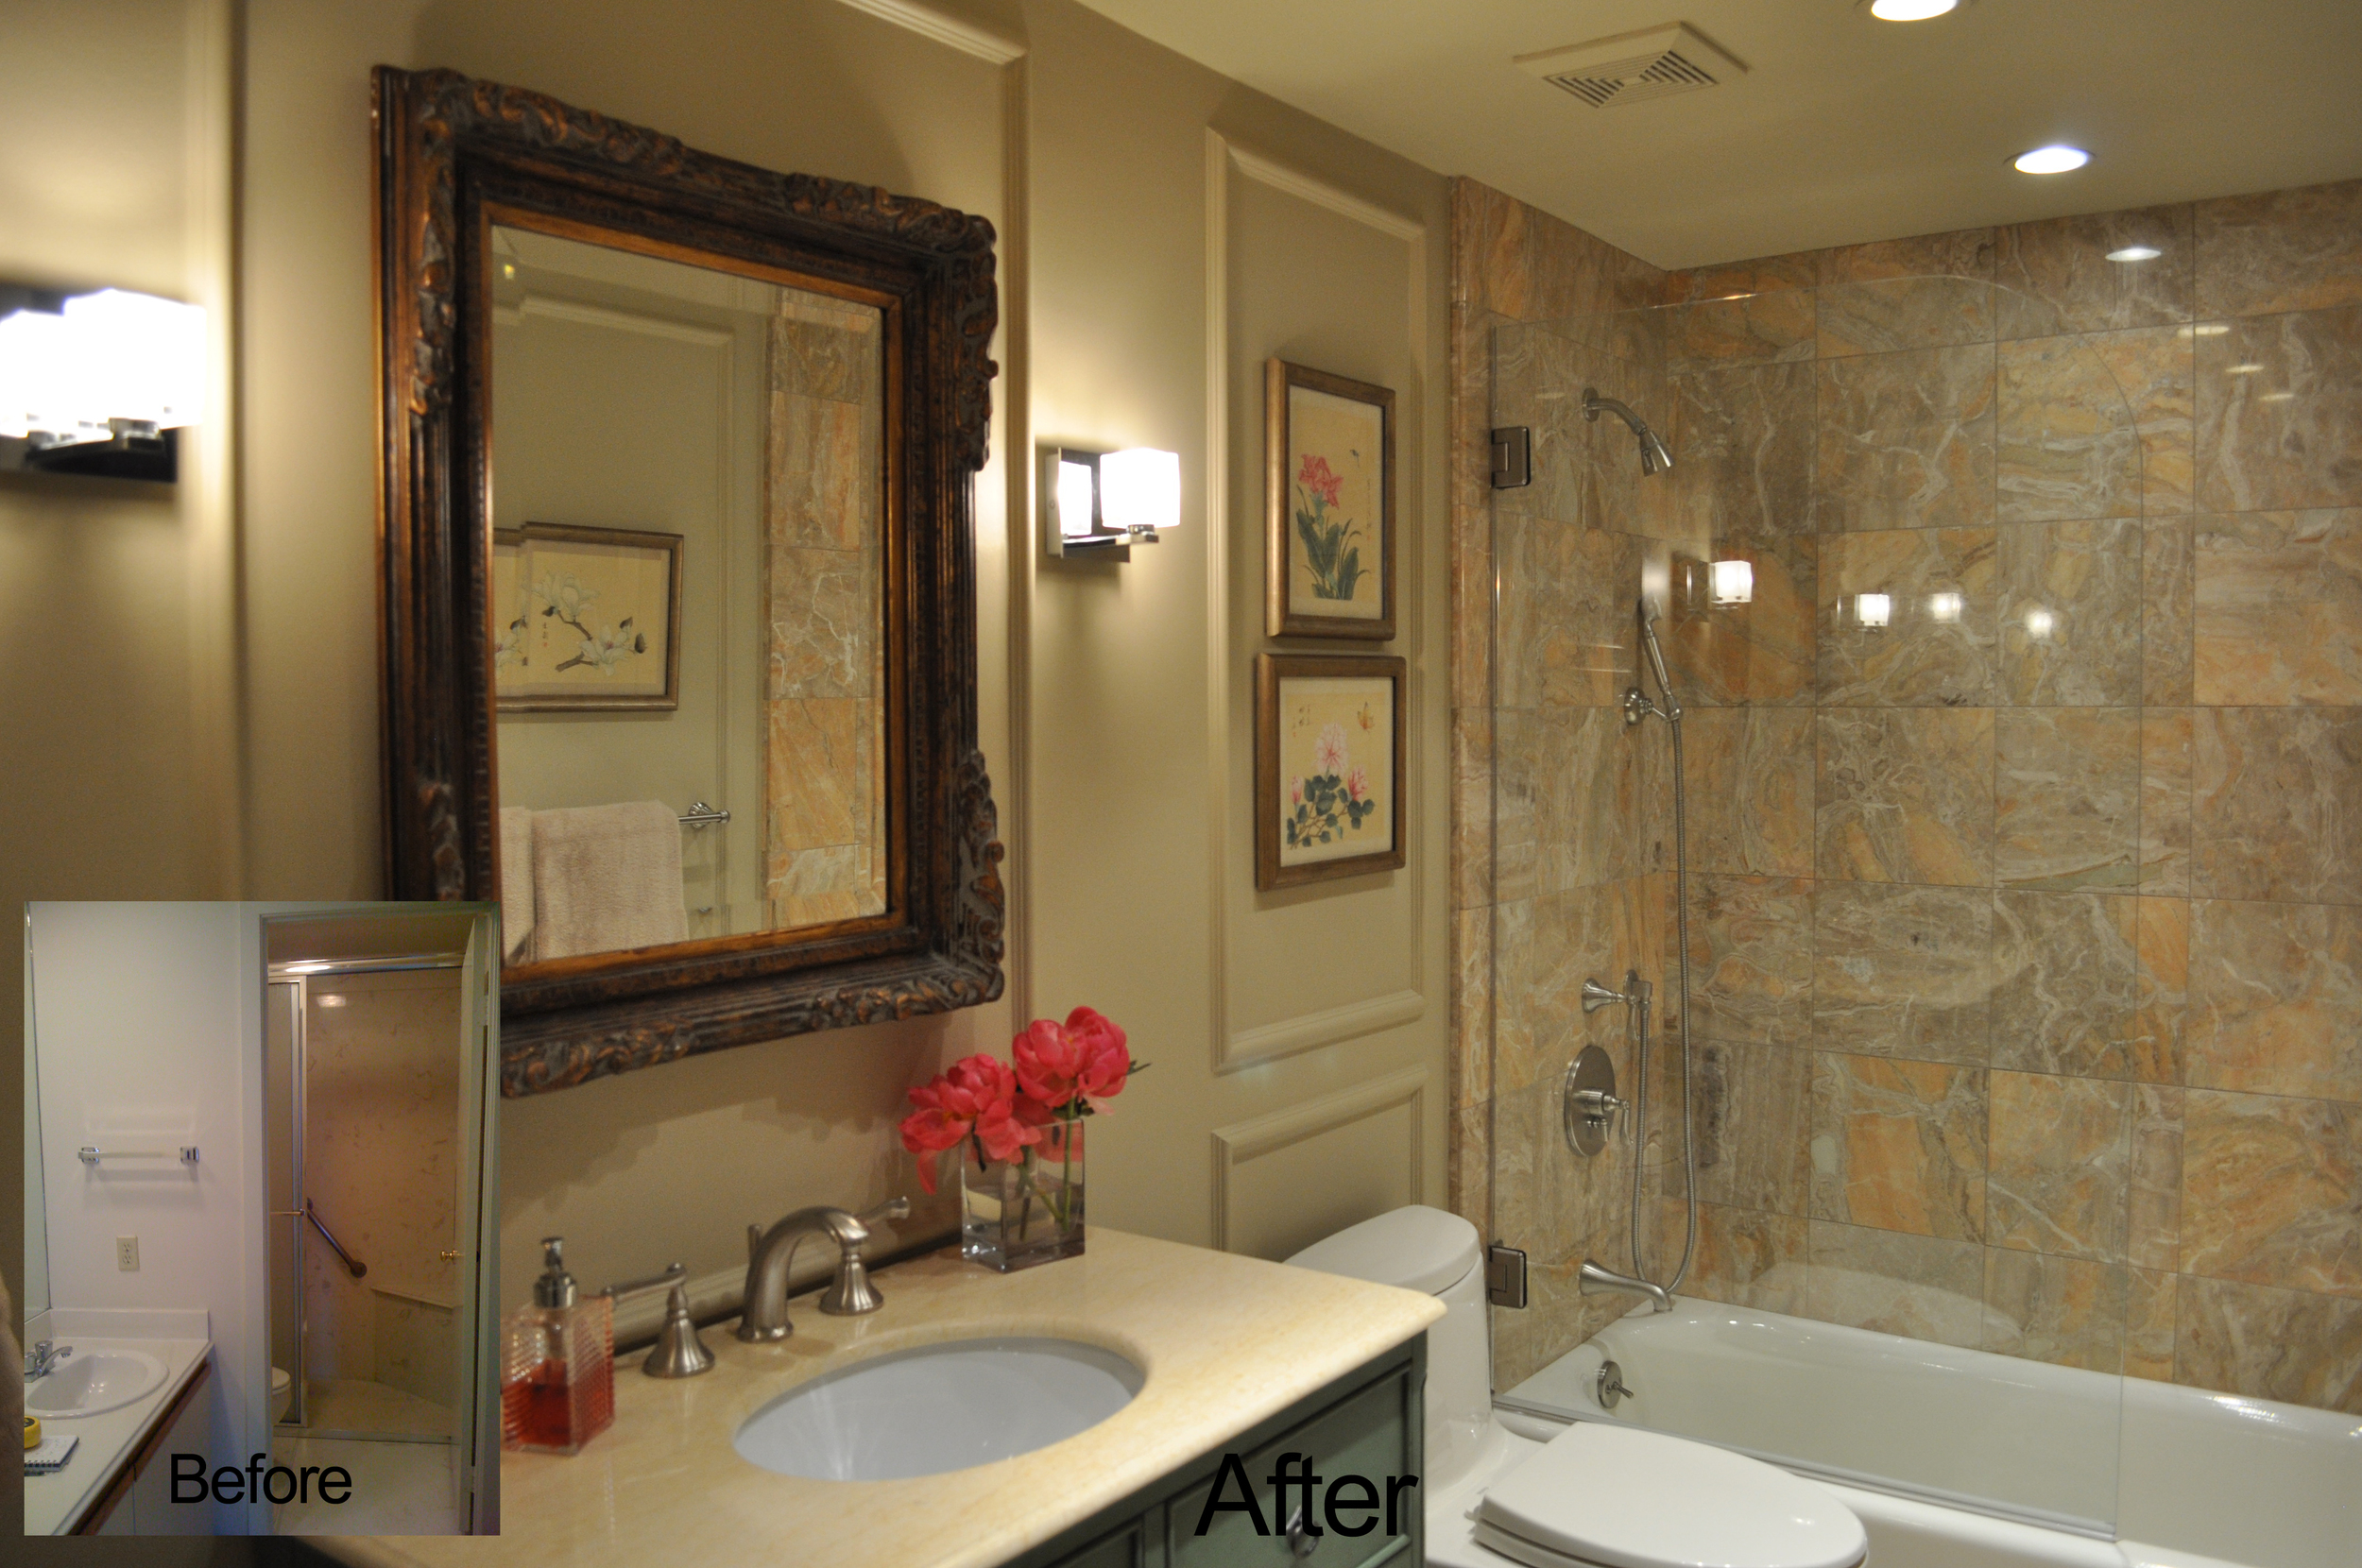 Jamie House Design Bathroom Remodel Before and After